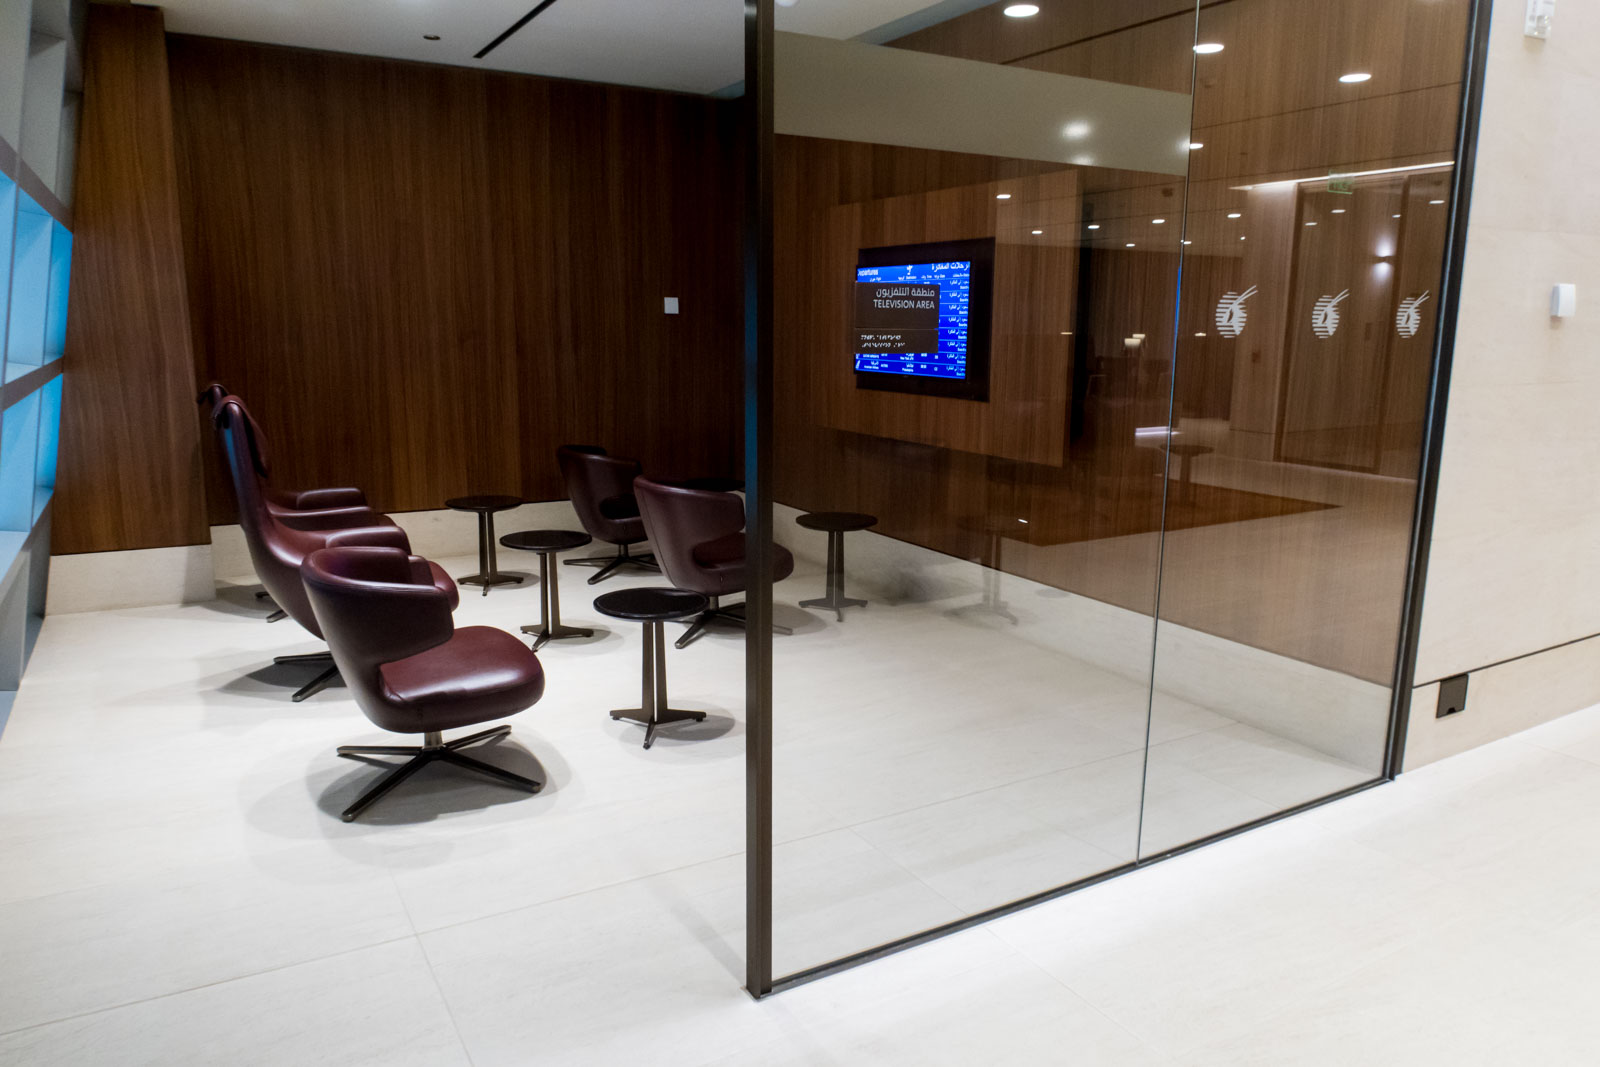 TV Room in Qatar Airways Arrivals Lounge in Doha